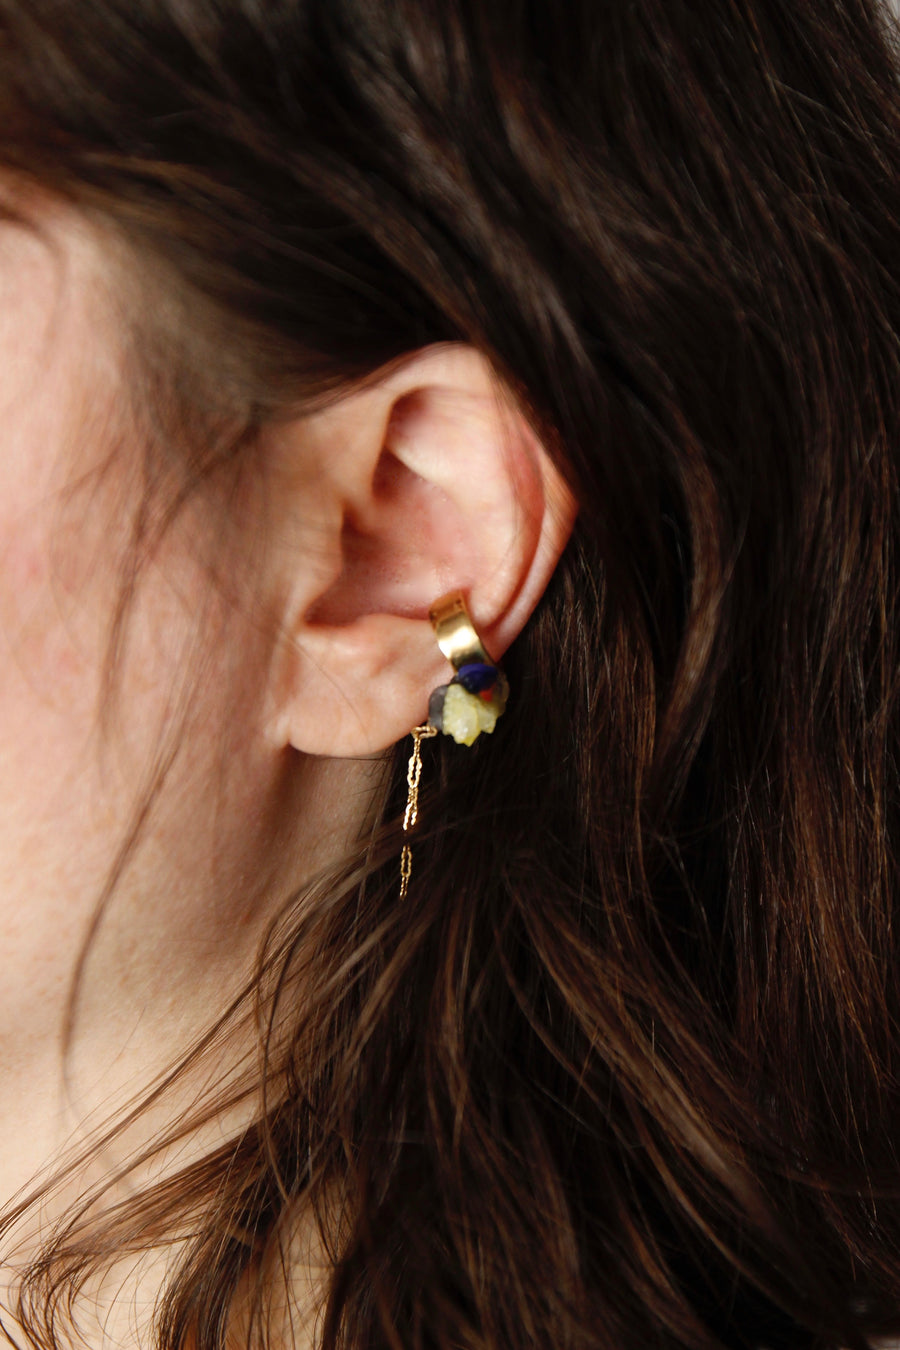 Unique Handcrafted Dangling Ear Cuff by Gré with yellow spirit quartz, brass and gold chain